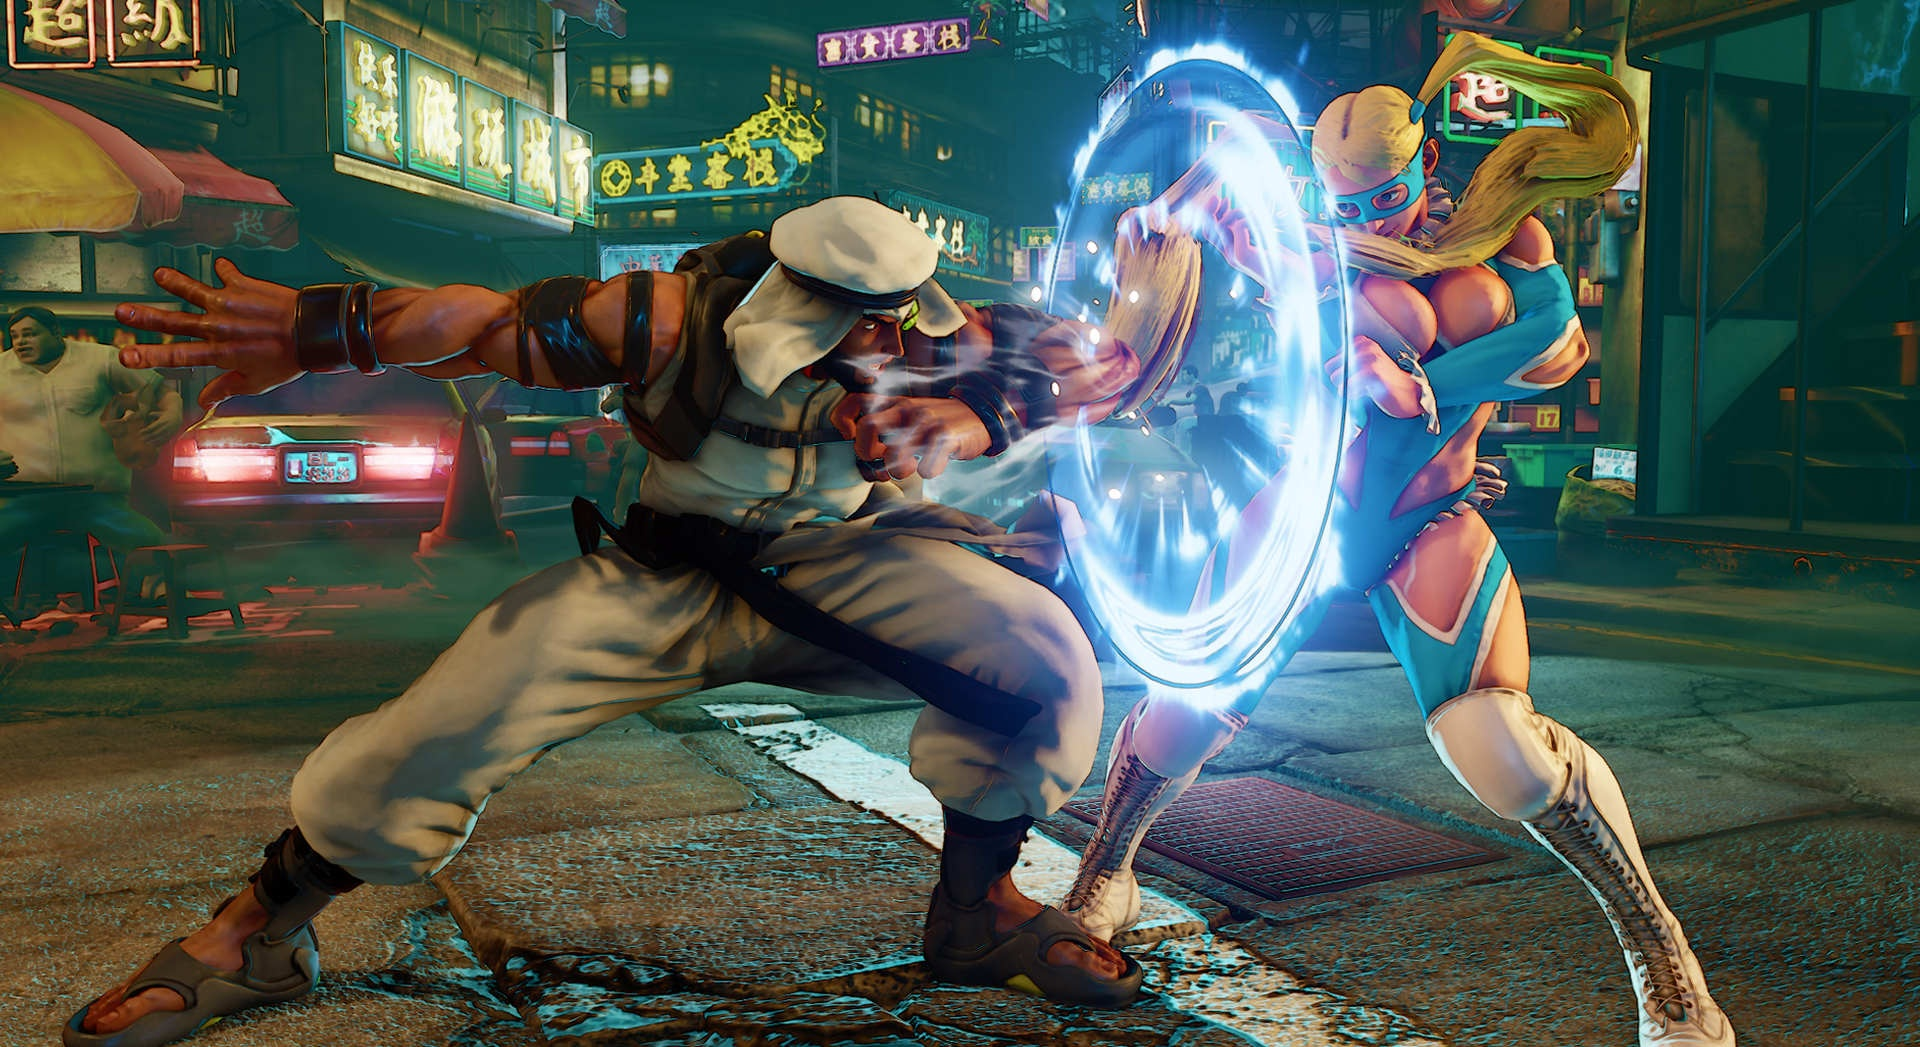 While lacking in gameplay modes, Street Fighter V is a wonderfully playing release in the series. Showing off my favorite character there: Rashid!